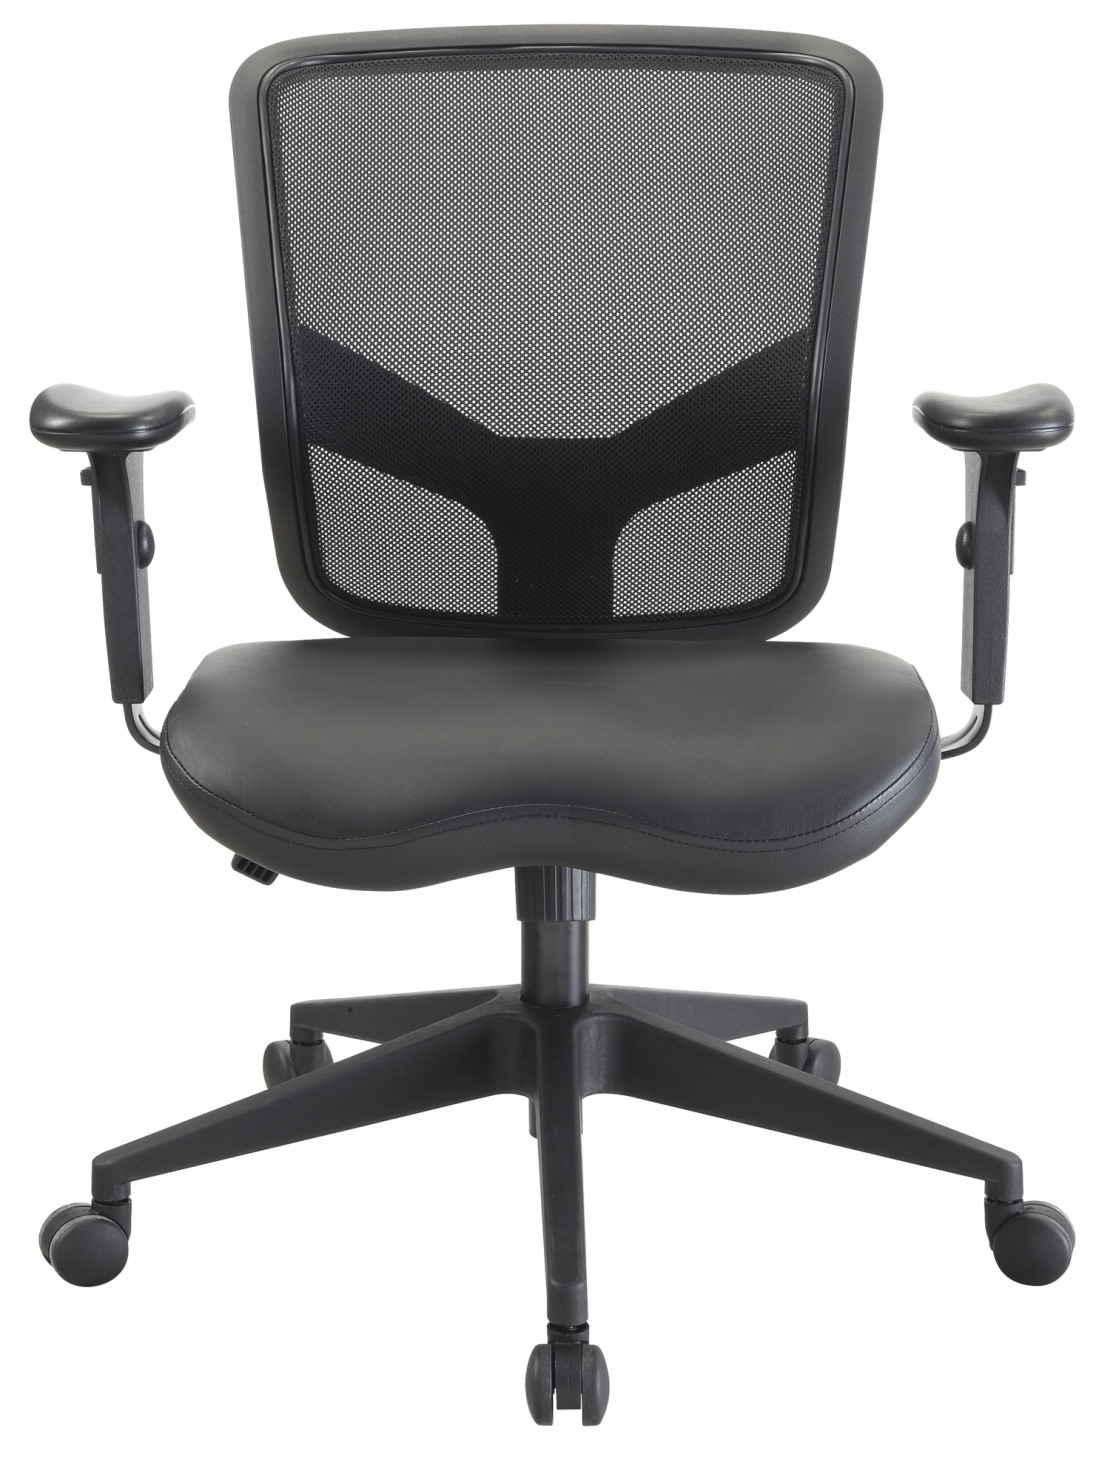 Lorell Executive Mid Back Mesh And Leather Chair; 27-1/2 X 28-1/2 X 38-1/2 Inches; Black - 1565546 - Yoga And Pilates Eyebags And Neckpillows 1565546